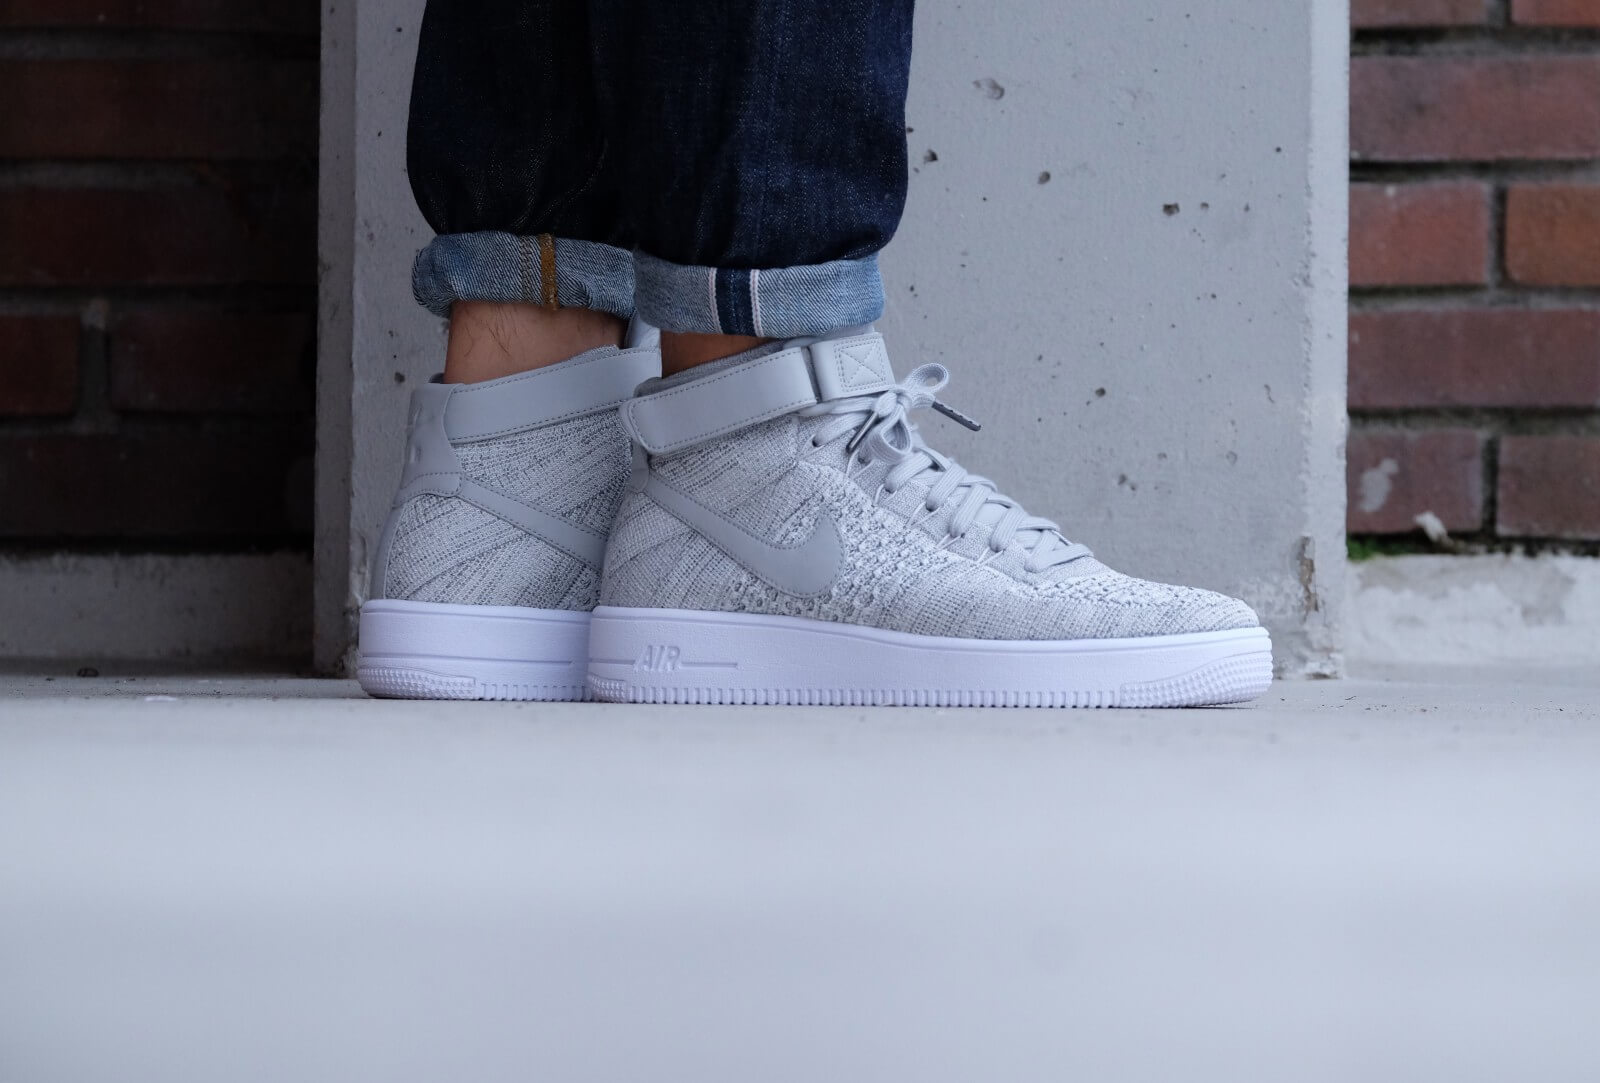 Nike Air Force 1 Ultra Flyknit Mid Wolf greywolf grey white 817420 003